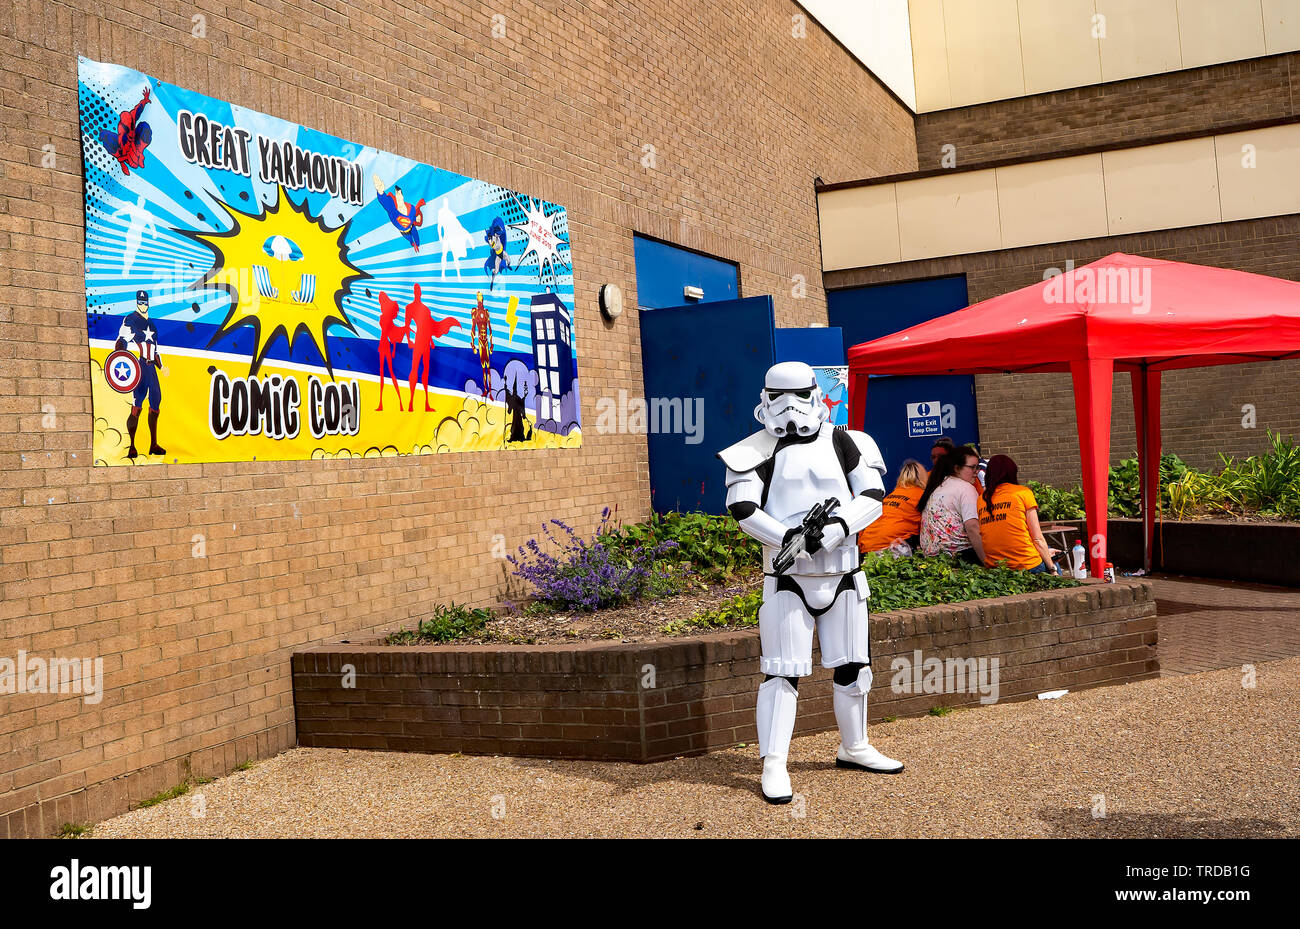 Great Yarmouth Comicon 2019 – Portrait of a man dressed up as a Storm Trooper from the hit Star Wars saga standing outside the entrance to the Comicon - Stock Image